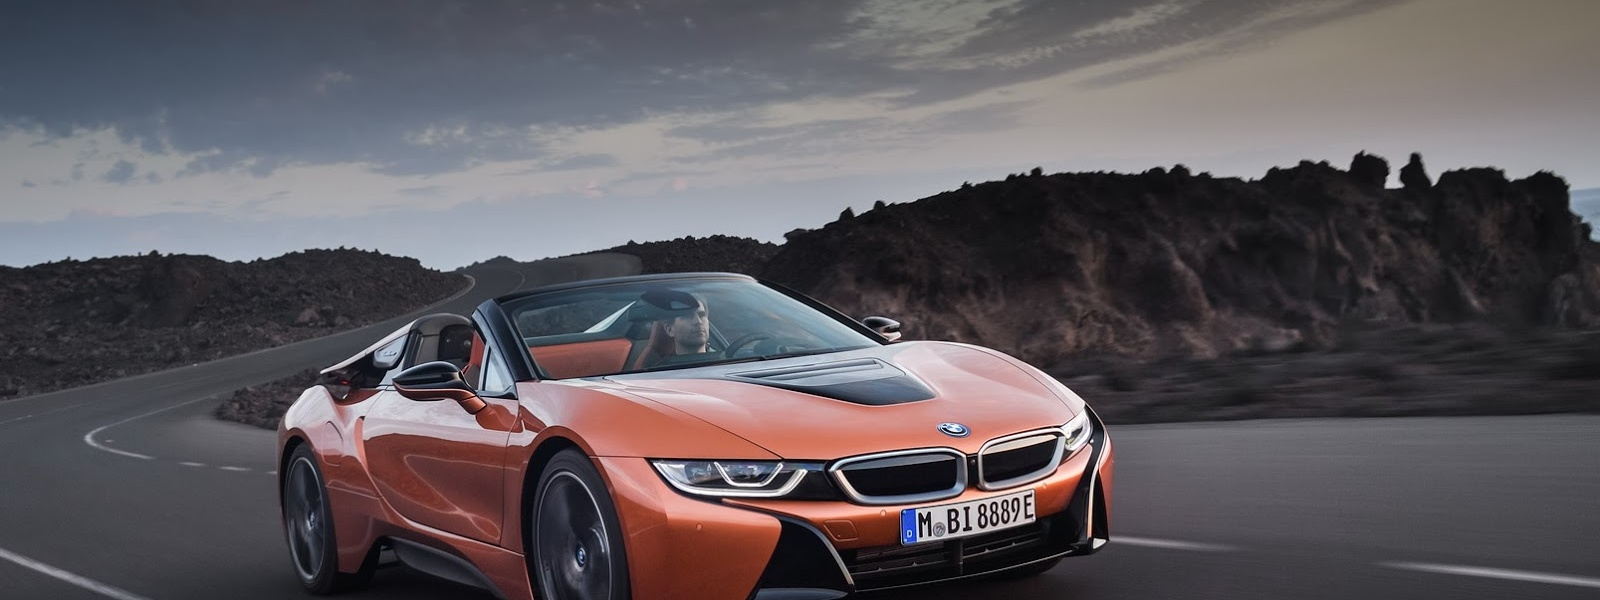 2019-BMW-i8-Roadster-Coupe-35.jpg